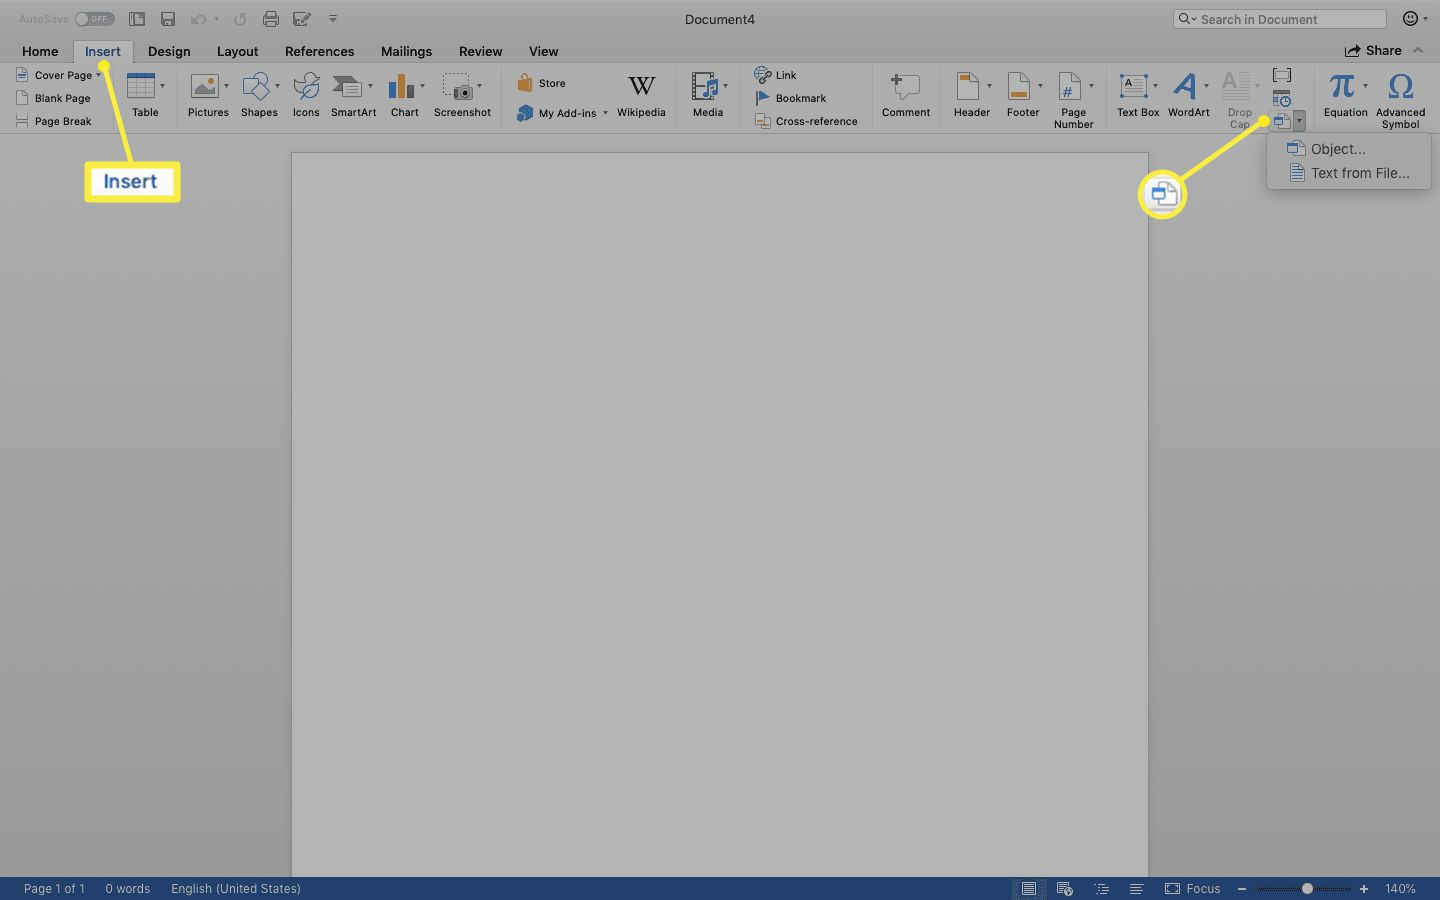 Insert tab showing Object icon